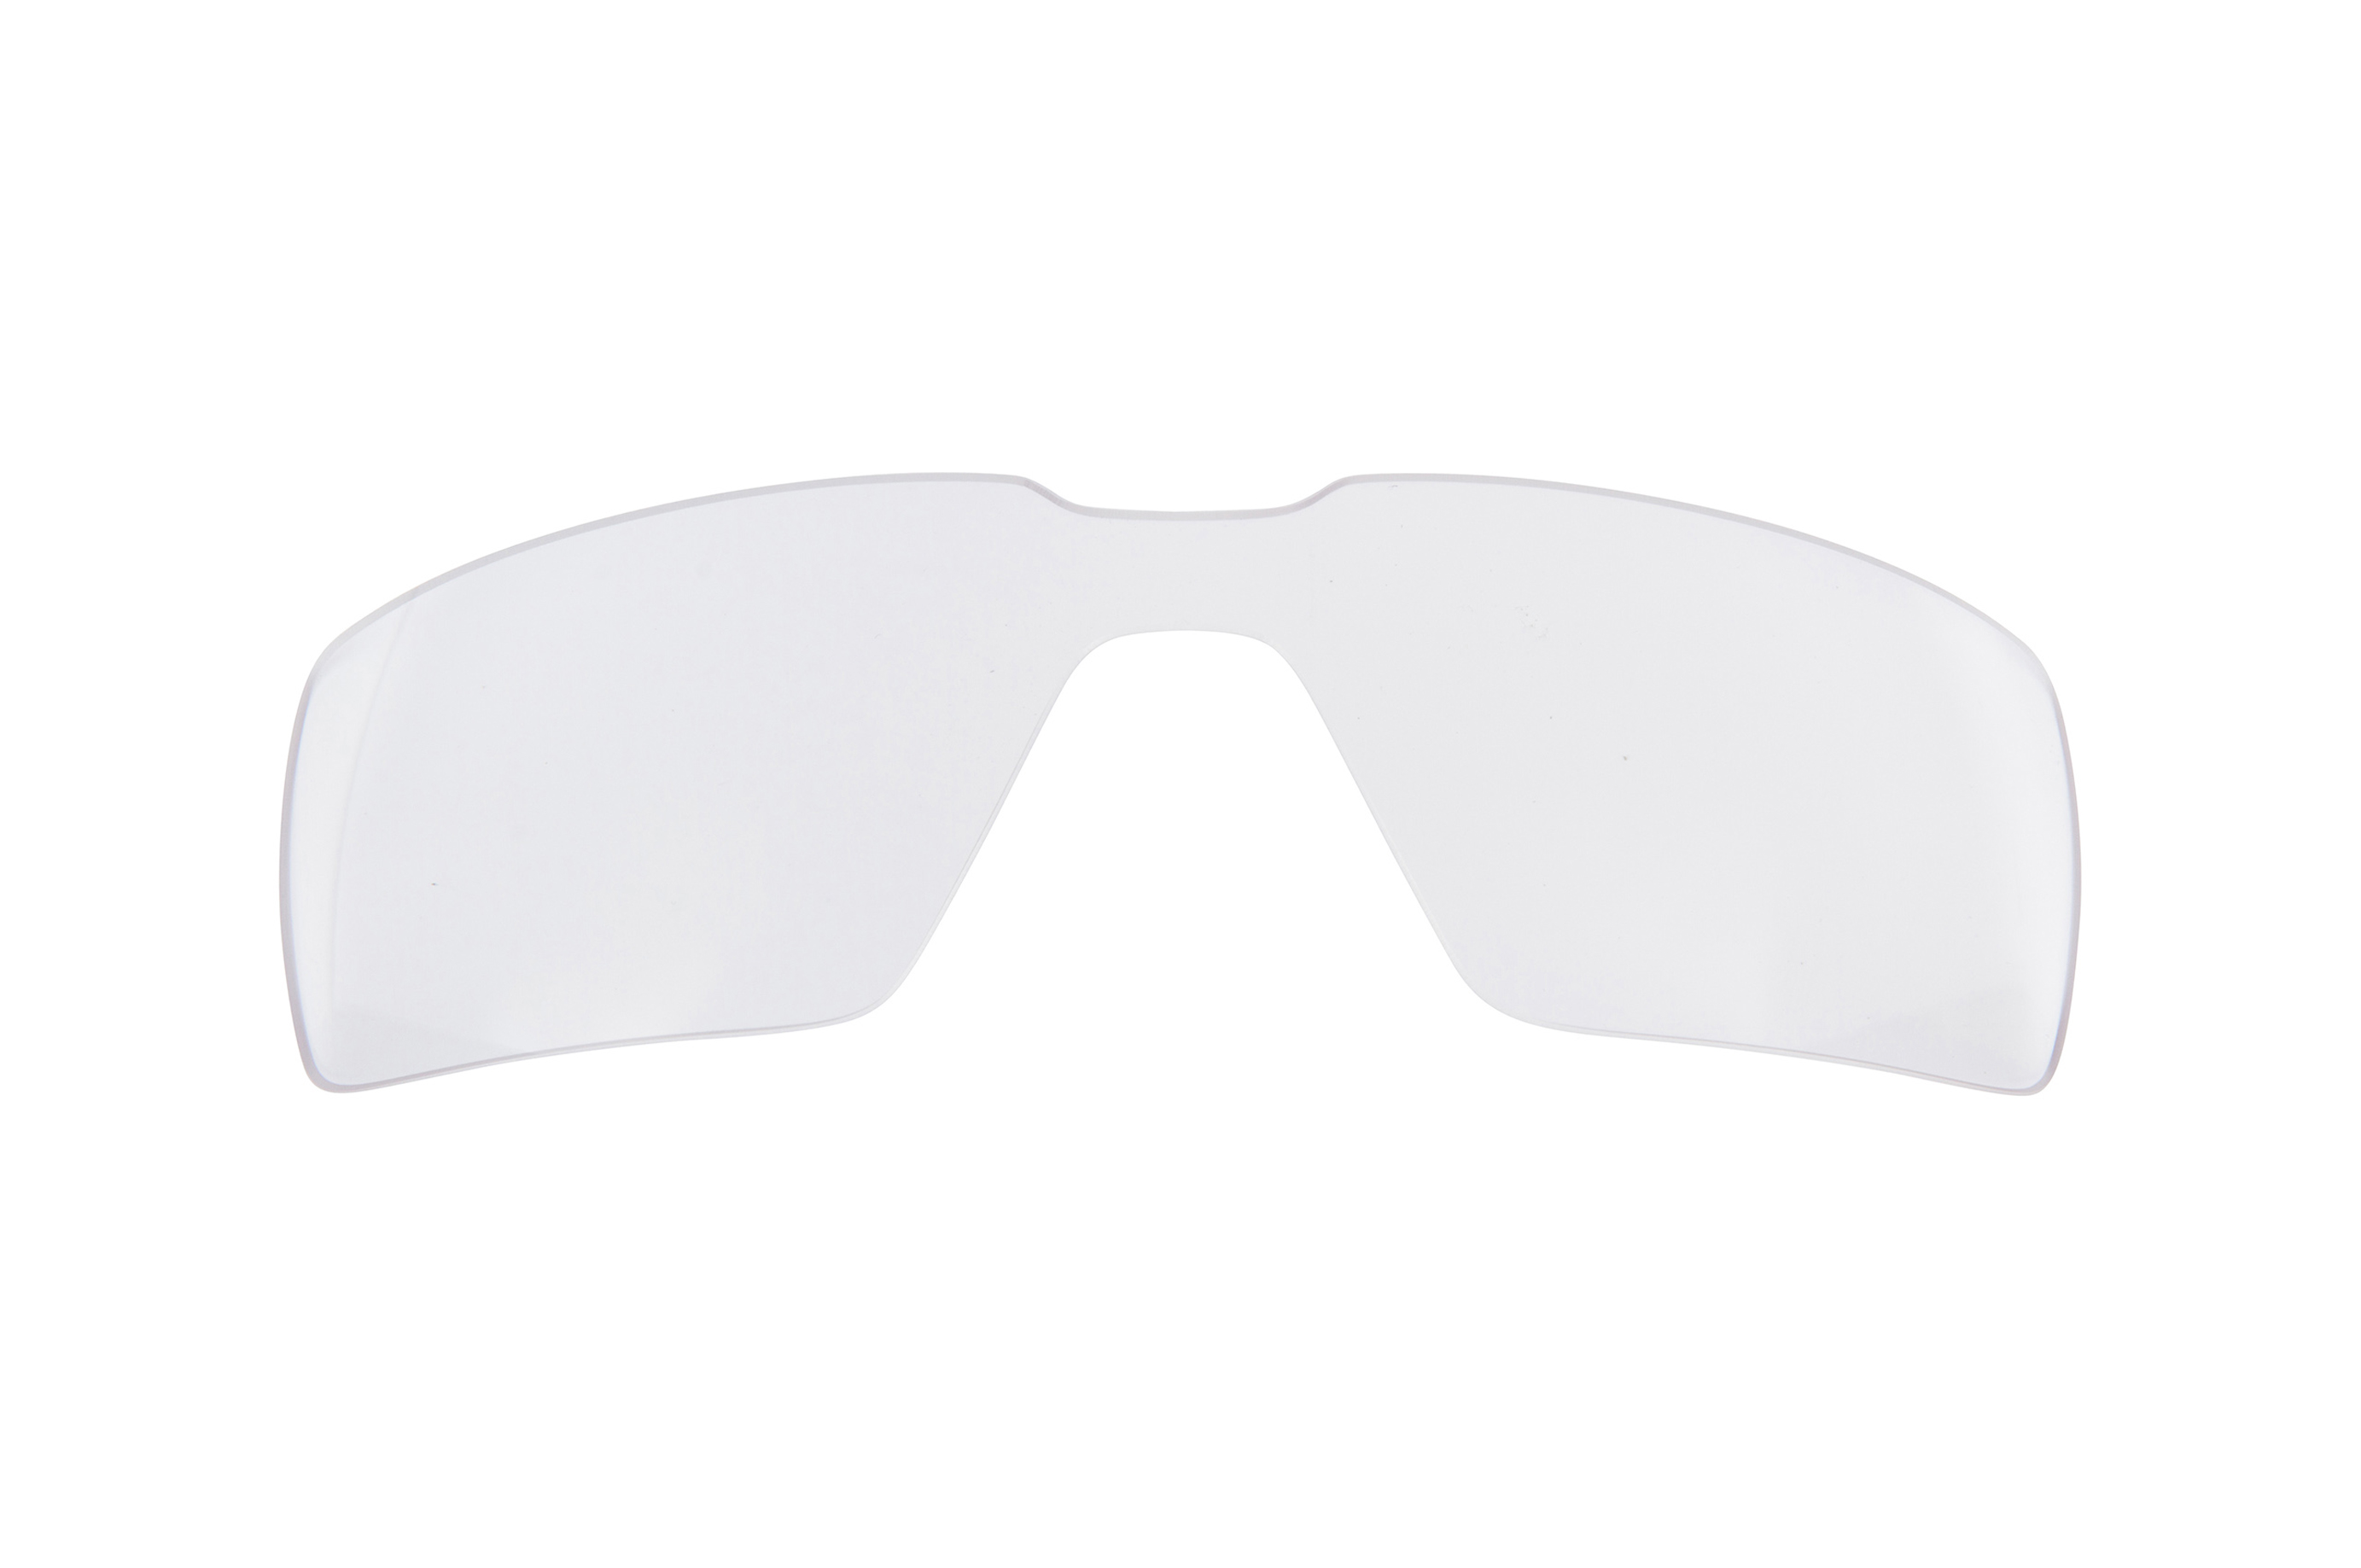 917da2edef3 Images Oakley Probation Replacement Lenses